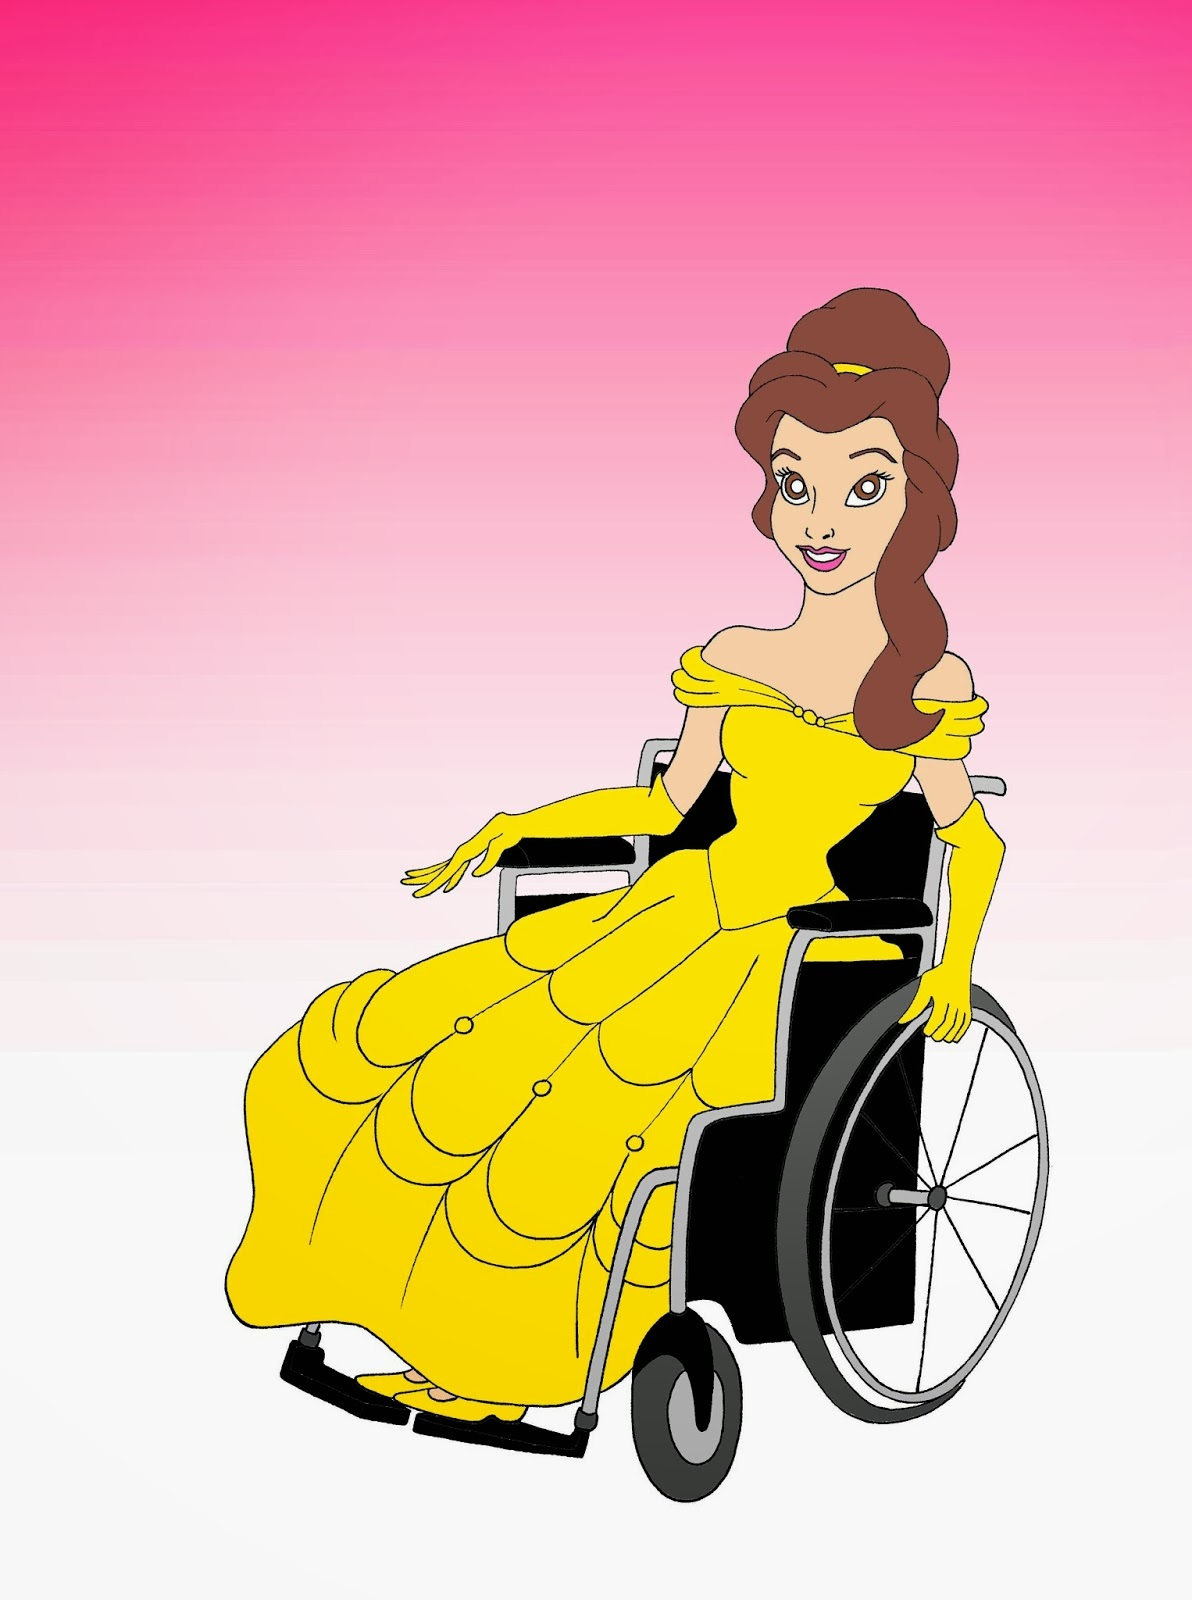 Disabled Disney Princess Belle Disabled Disability Equal Rights Wellchair Health Art Campaign ADV Cartoon Painting Portrait Illustration Sketch Humor Chic by aleXsandro Palombo